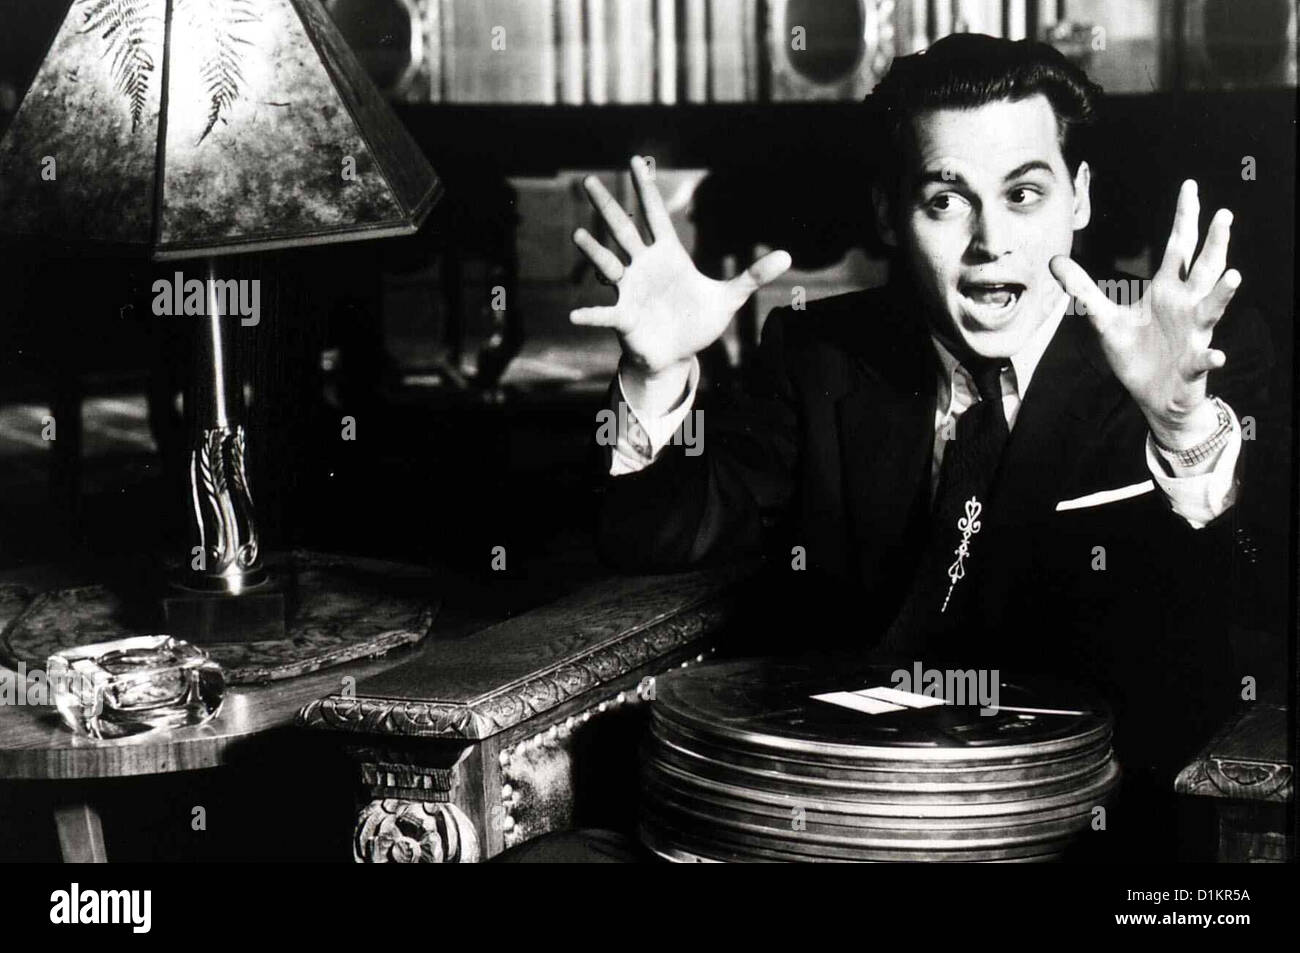 Ed Wood  Ed Wood  Johnny Depp Edward Wood Jr. (Johnny Depp) ist ein exzentrisches 'Allroundgenie', der als - Stock Image